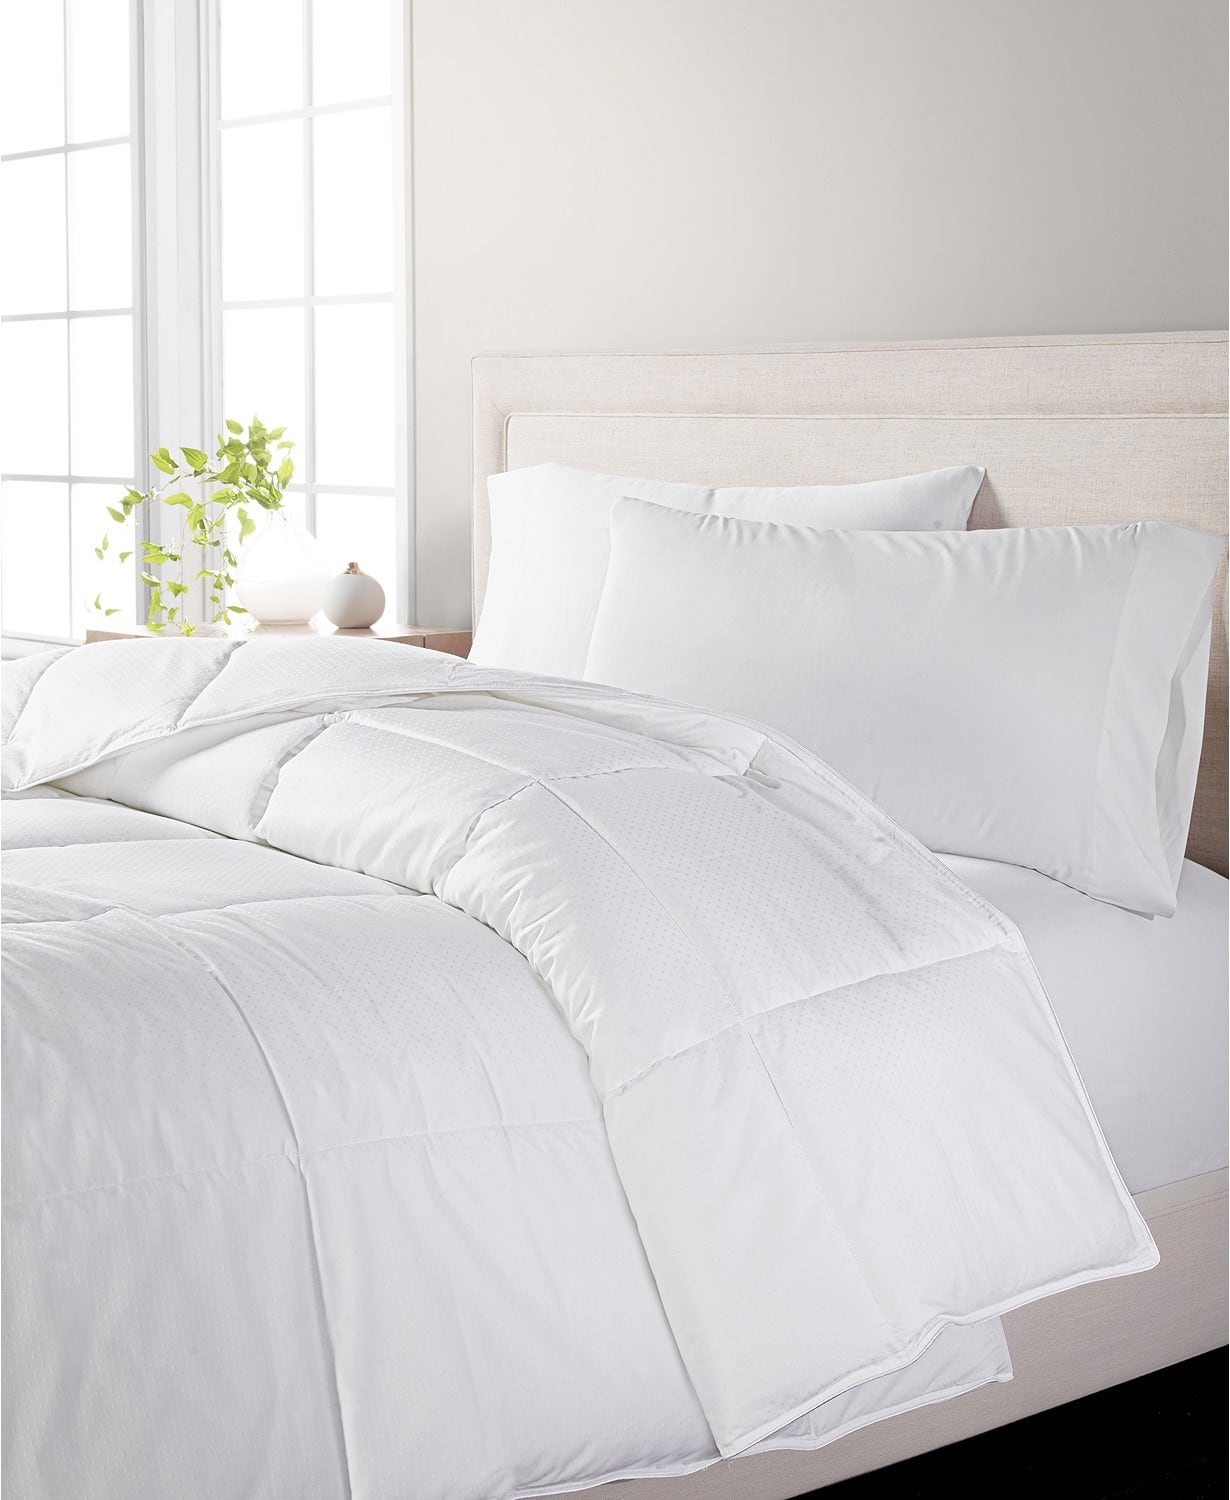 Martha Stewart Collection Dream Science Ultra Comfort Full/Queen/KING Down Alternative Comforter, White, Size: Full/Queen/King $39.93 *YMMV*